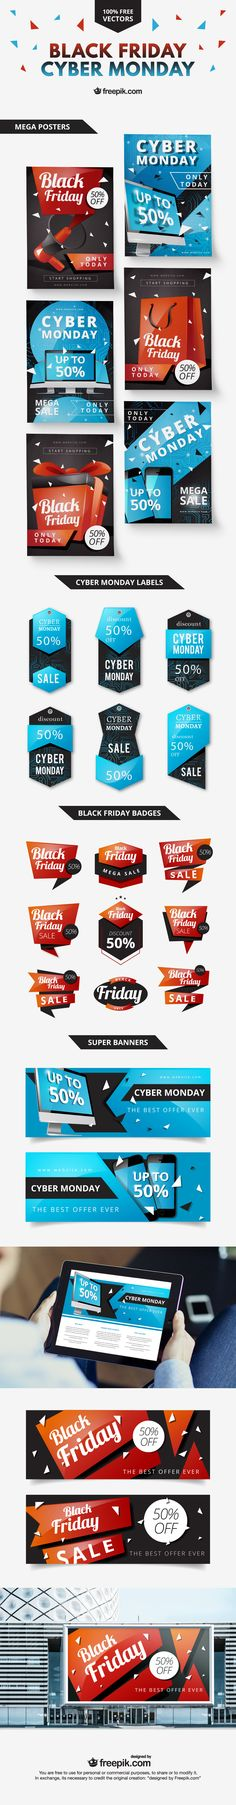 free black friday posters & website banners